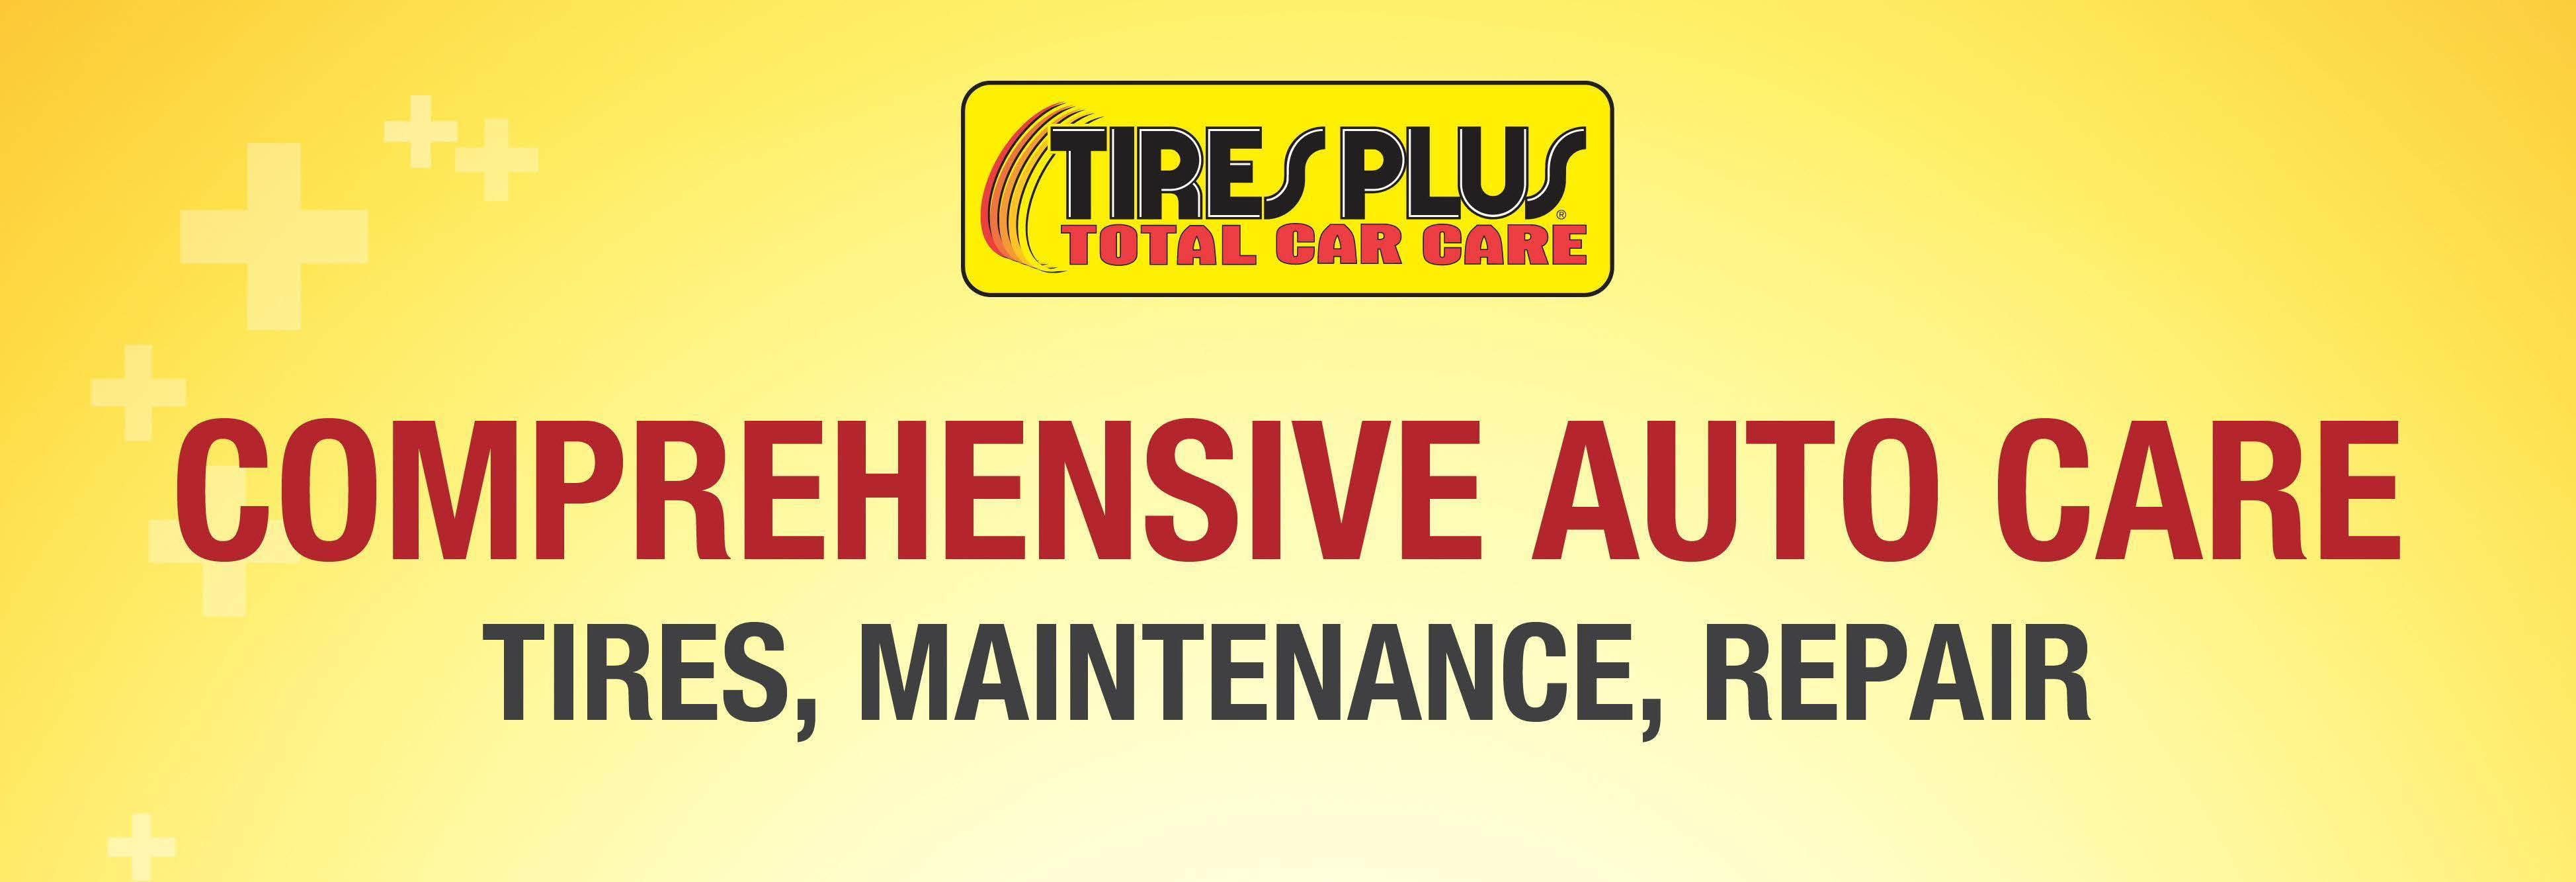 Tires Plus Total Car Care In Port Saint Lucie Fl Local Coupons